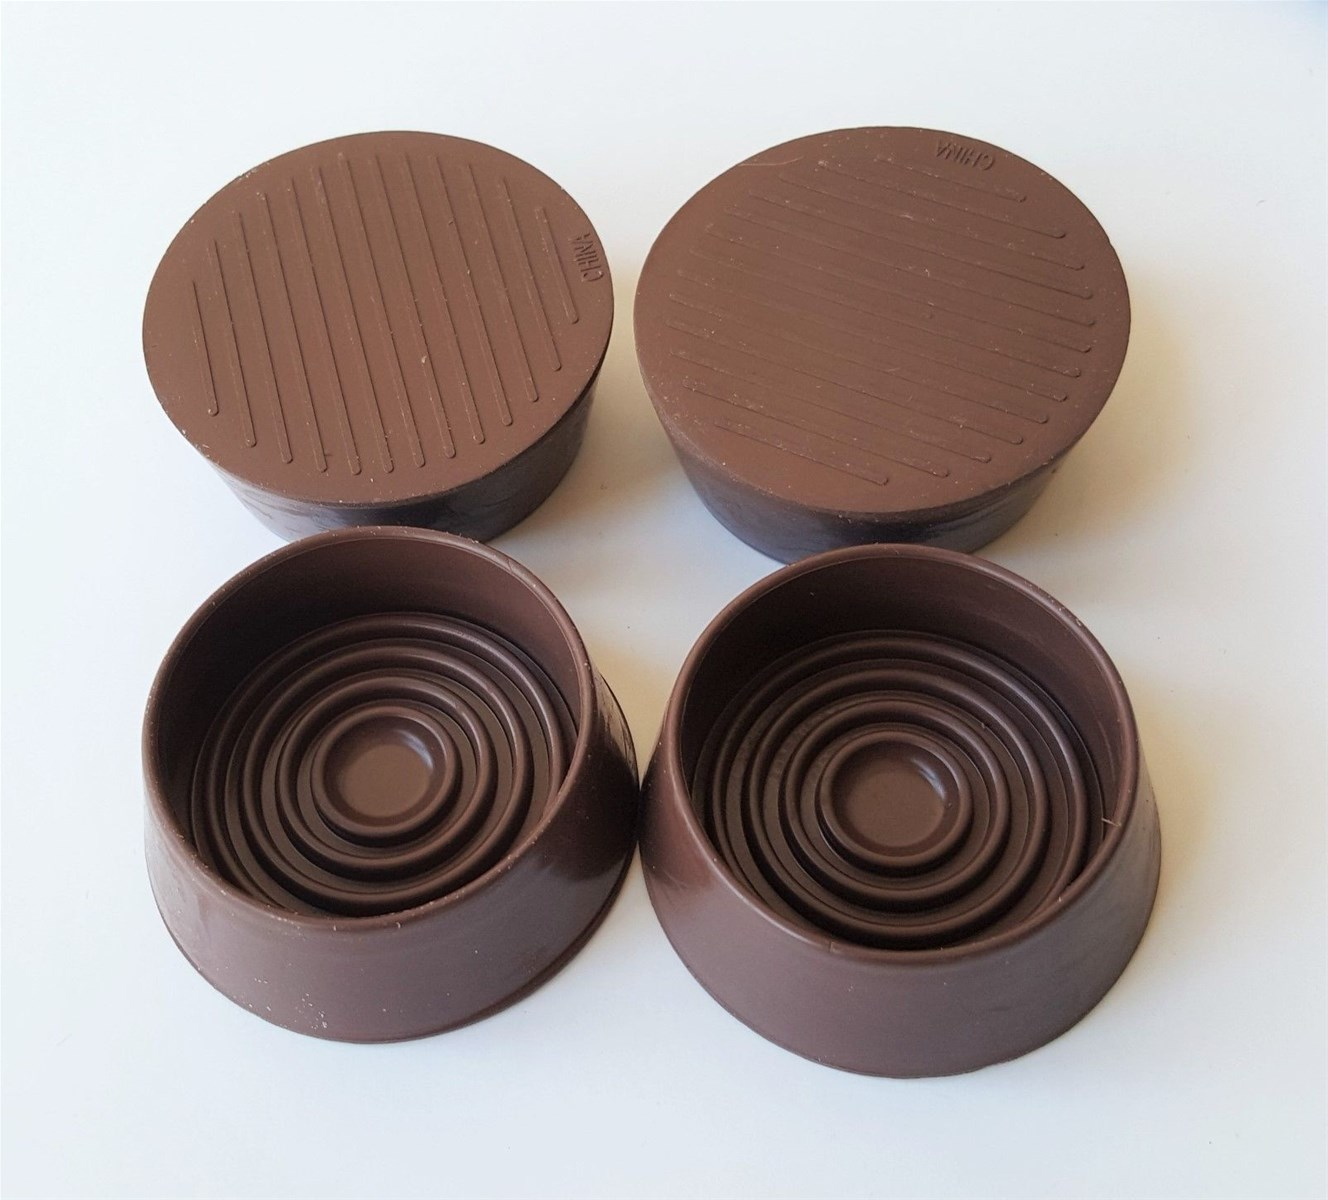 134inchROUND CASTOR CUPS Rubber Base Protects Floors BROWN 38 Or 44mm